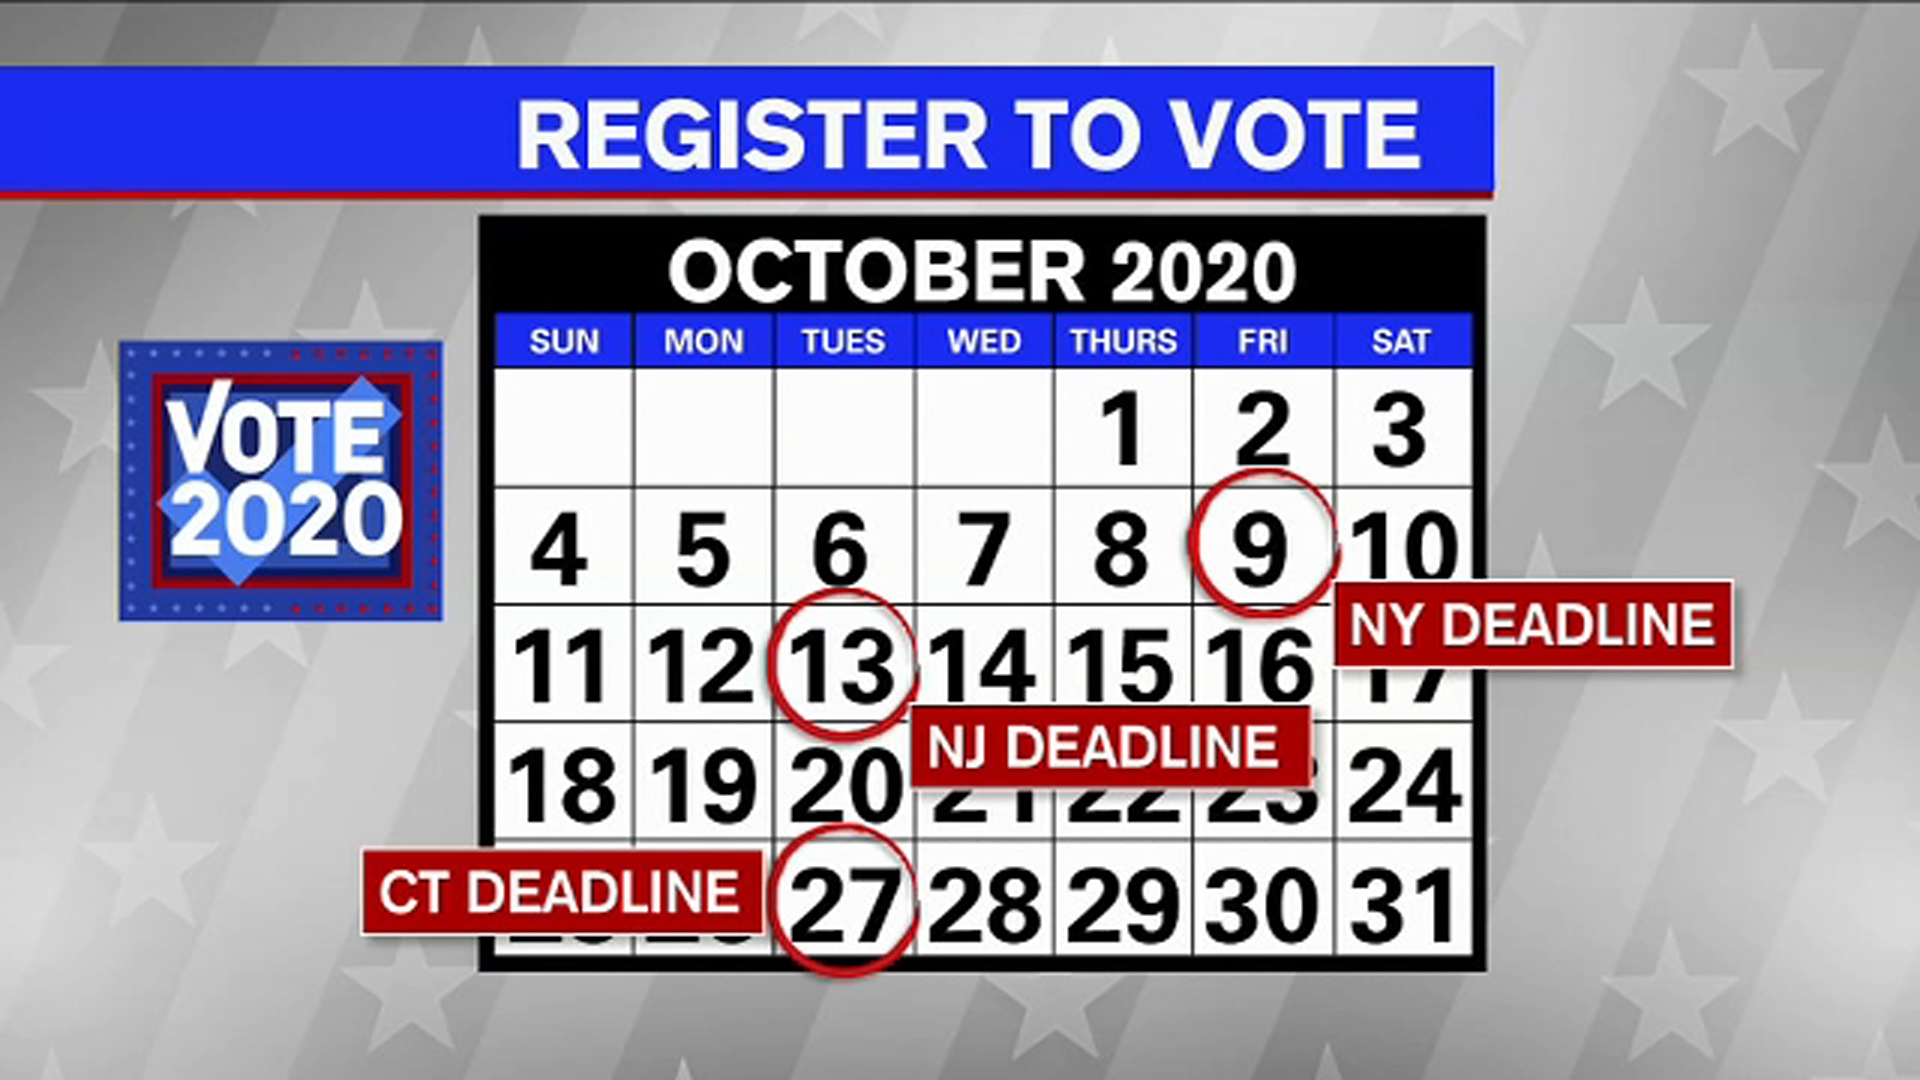 New Jersey 2022 Election Calendar.Election 2020 It S The Last Day To Register To Vote In New Jersey Abc7 New York